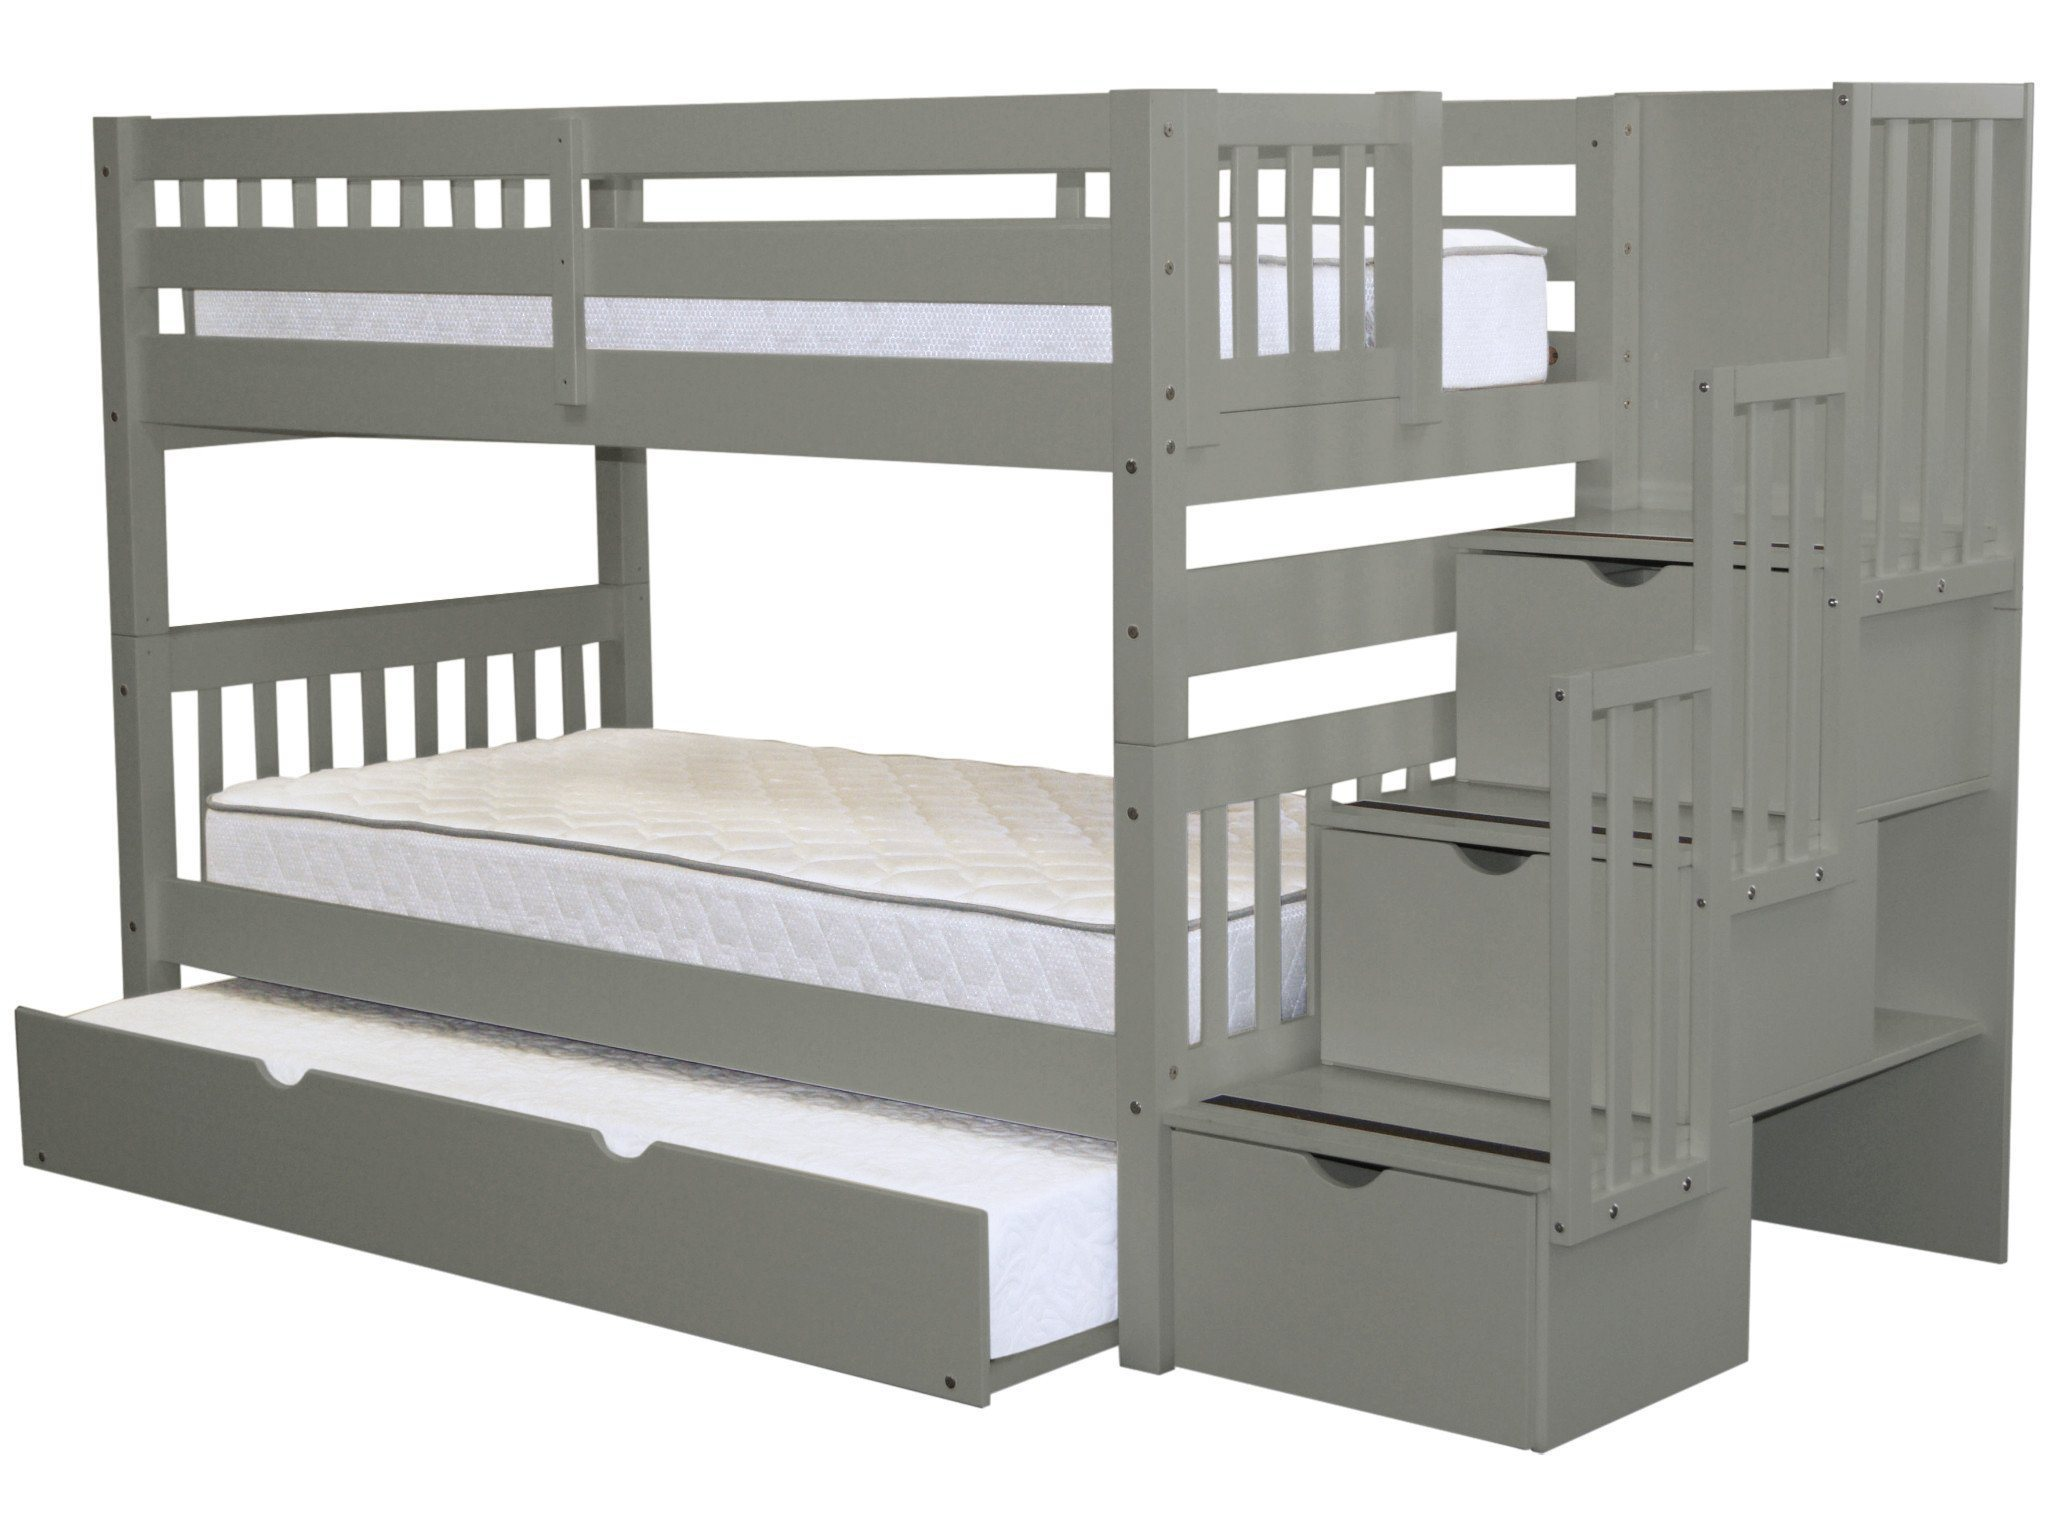 Bedz King Stairway Bunk Beds Twin over Twin with 3 Drawers in the Steps and a Twin Trundle, Cappuccino by Bedz King